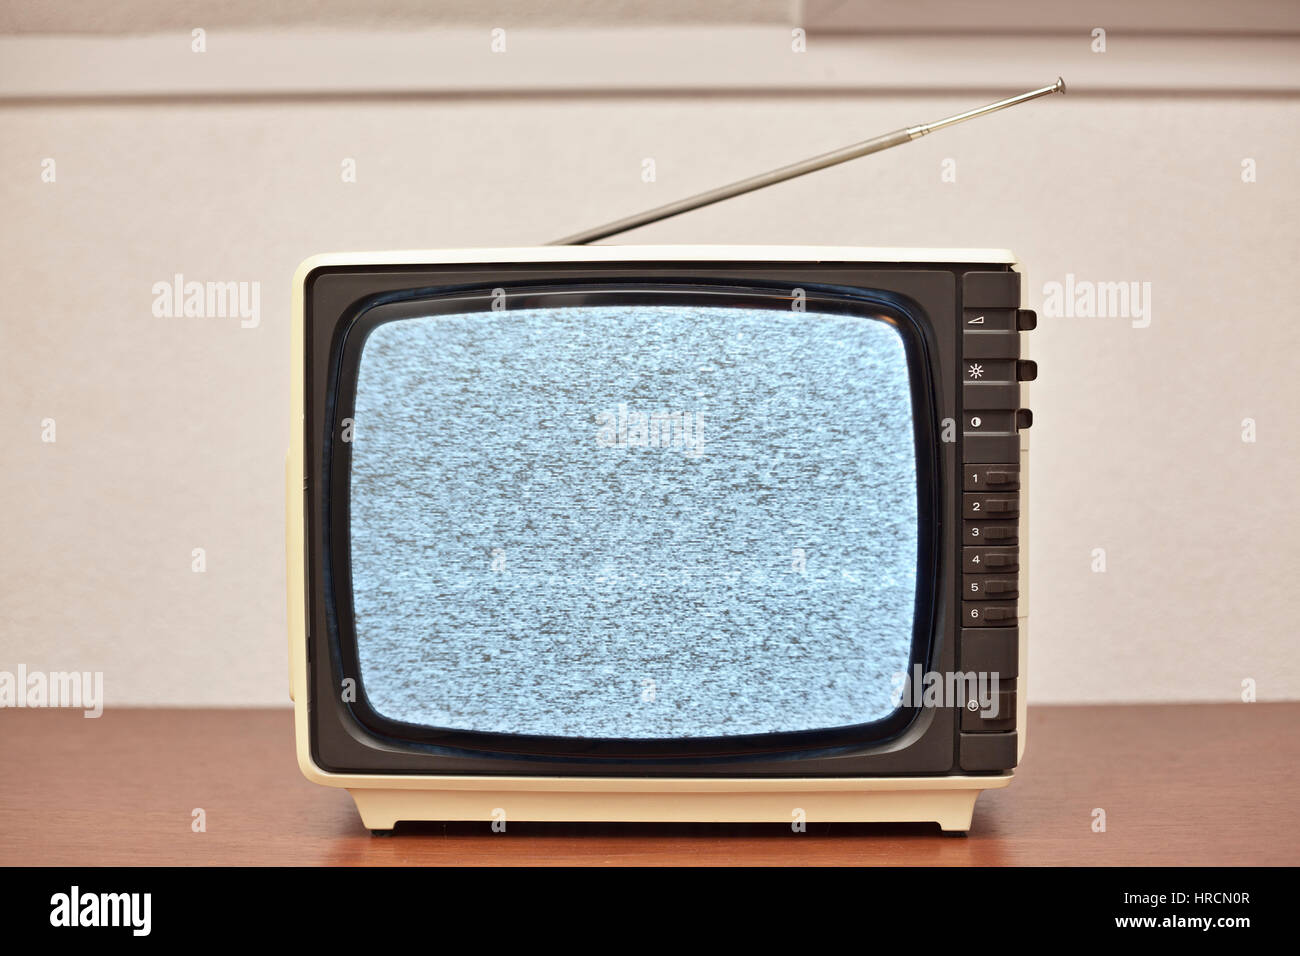 Small retro Black and white Television with no signal. - Stock Image